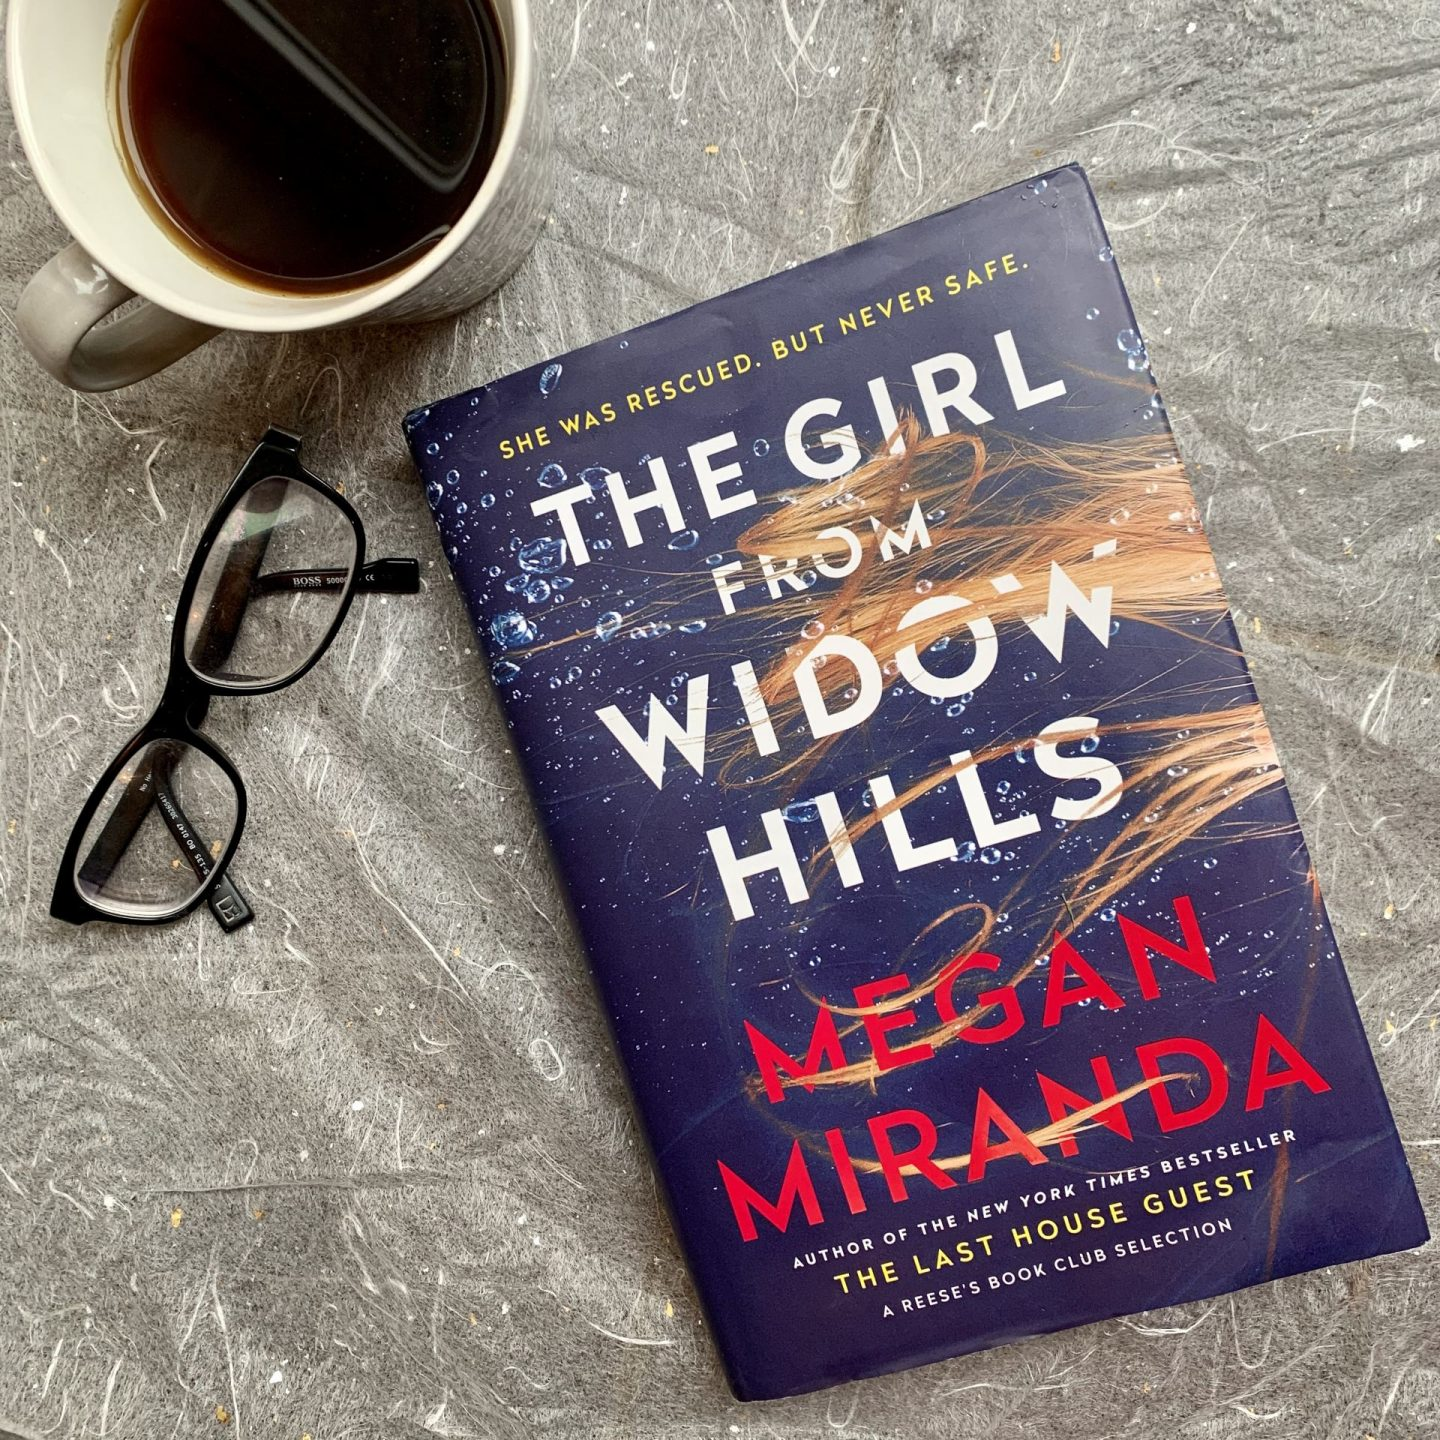 The Girl from Widow Hills; a truly chilling thriller